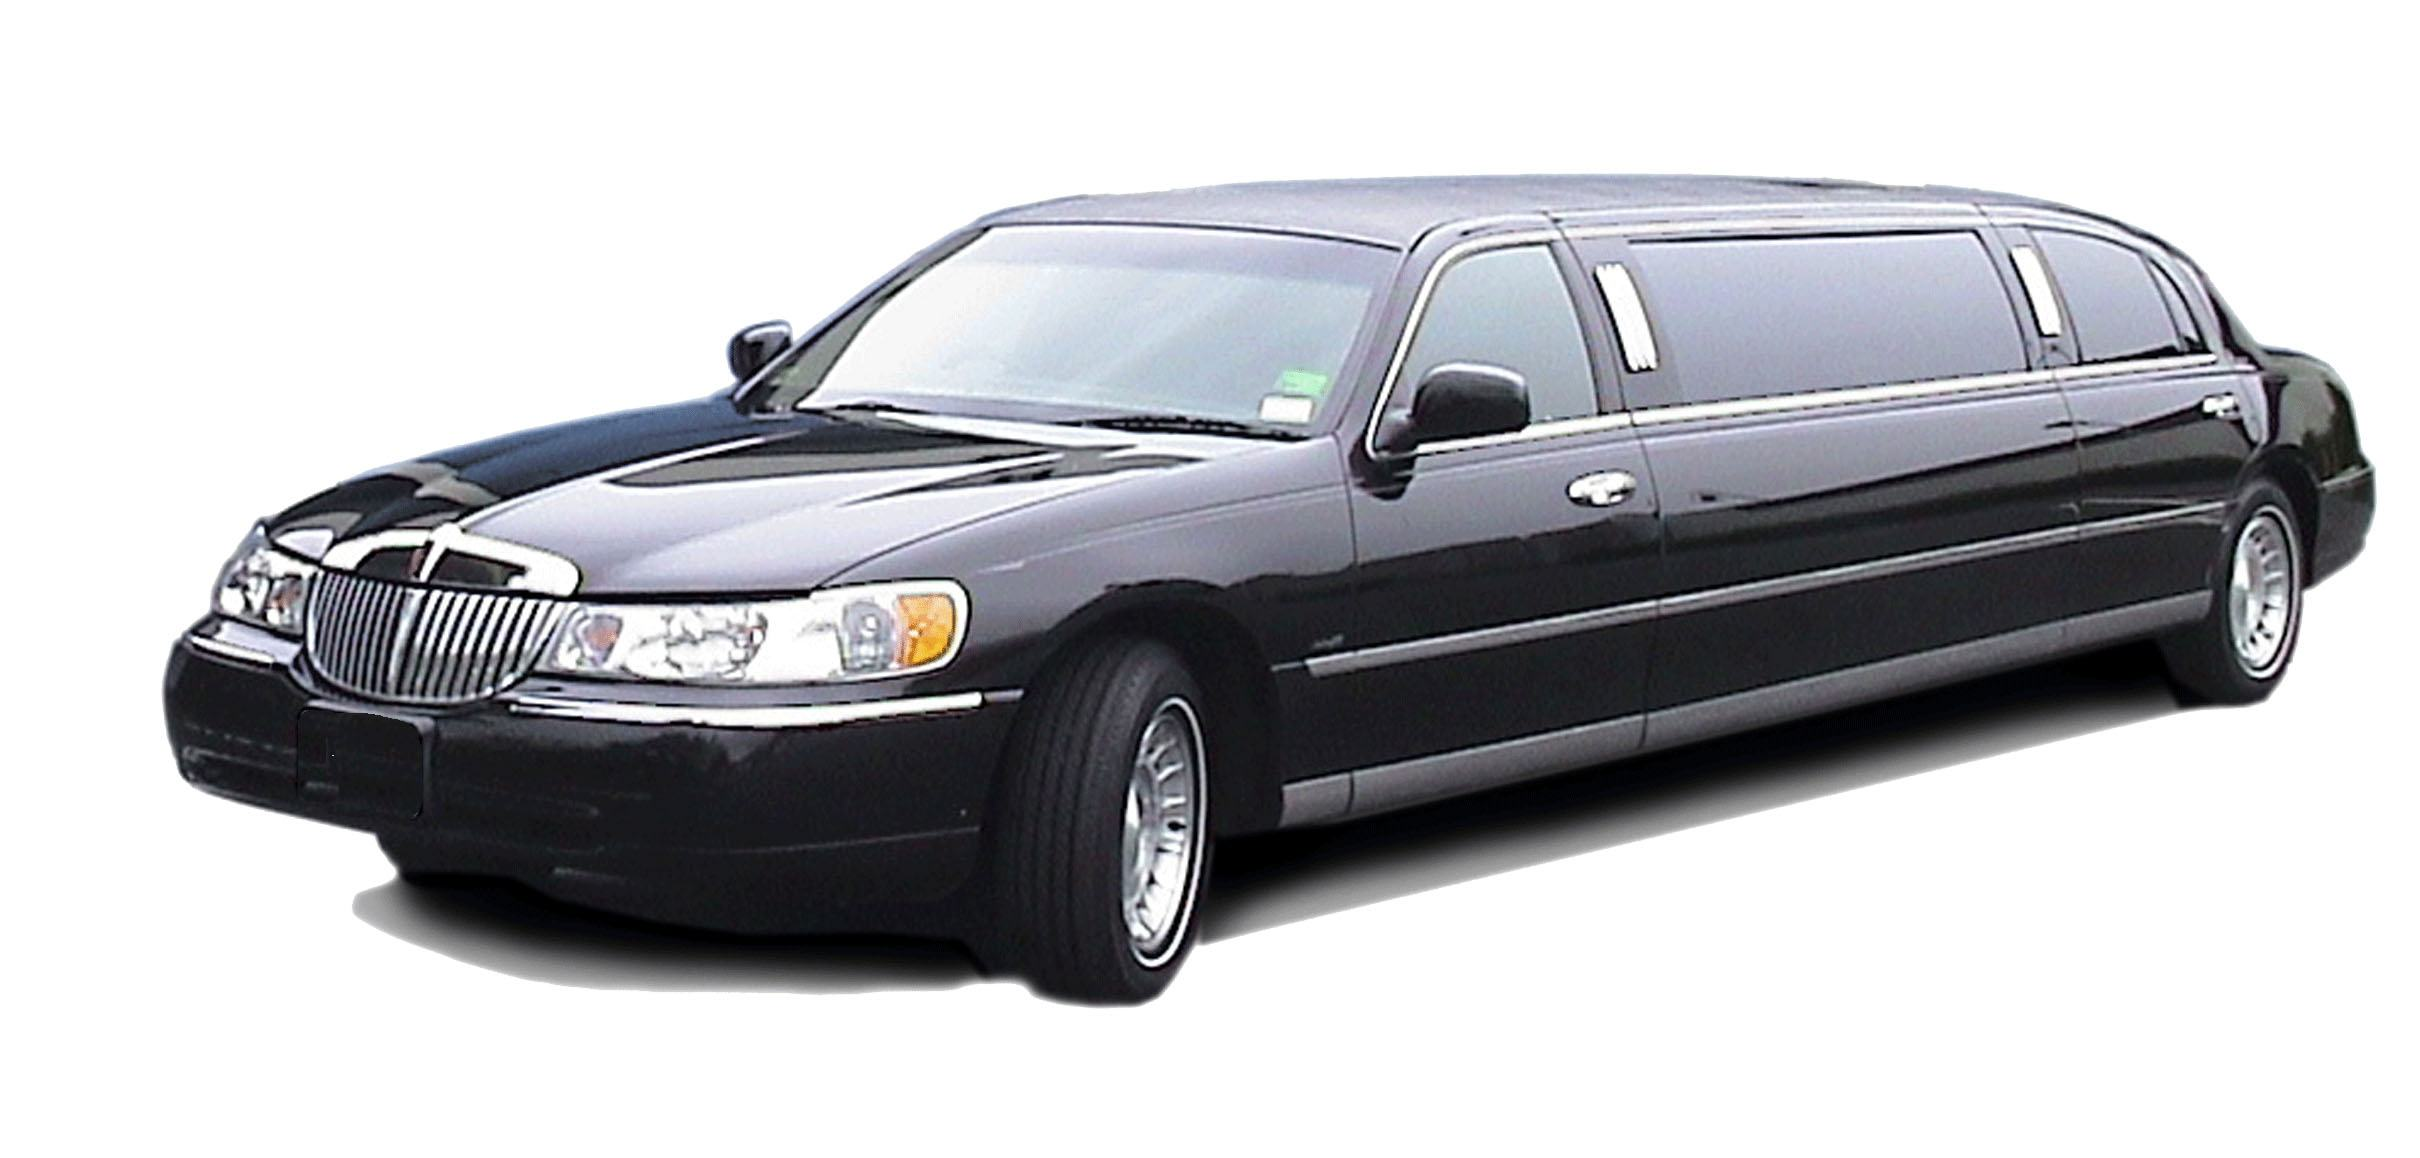 Pearl of Freehold Airport Taxi